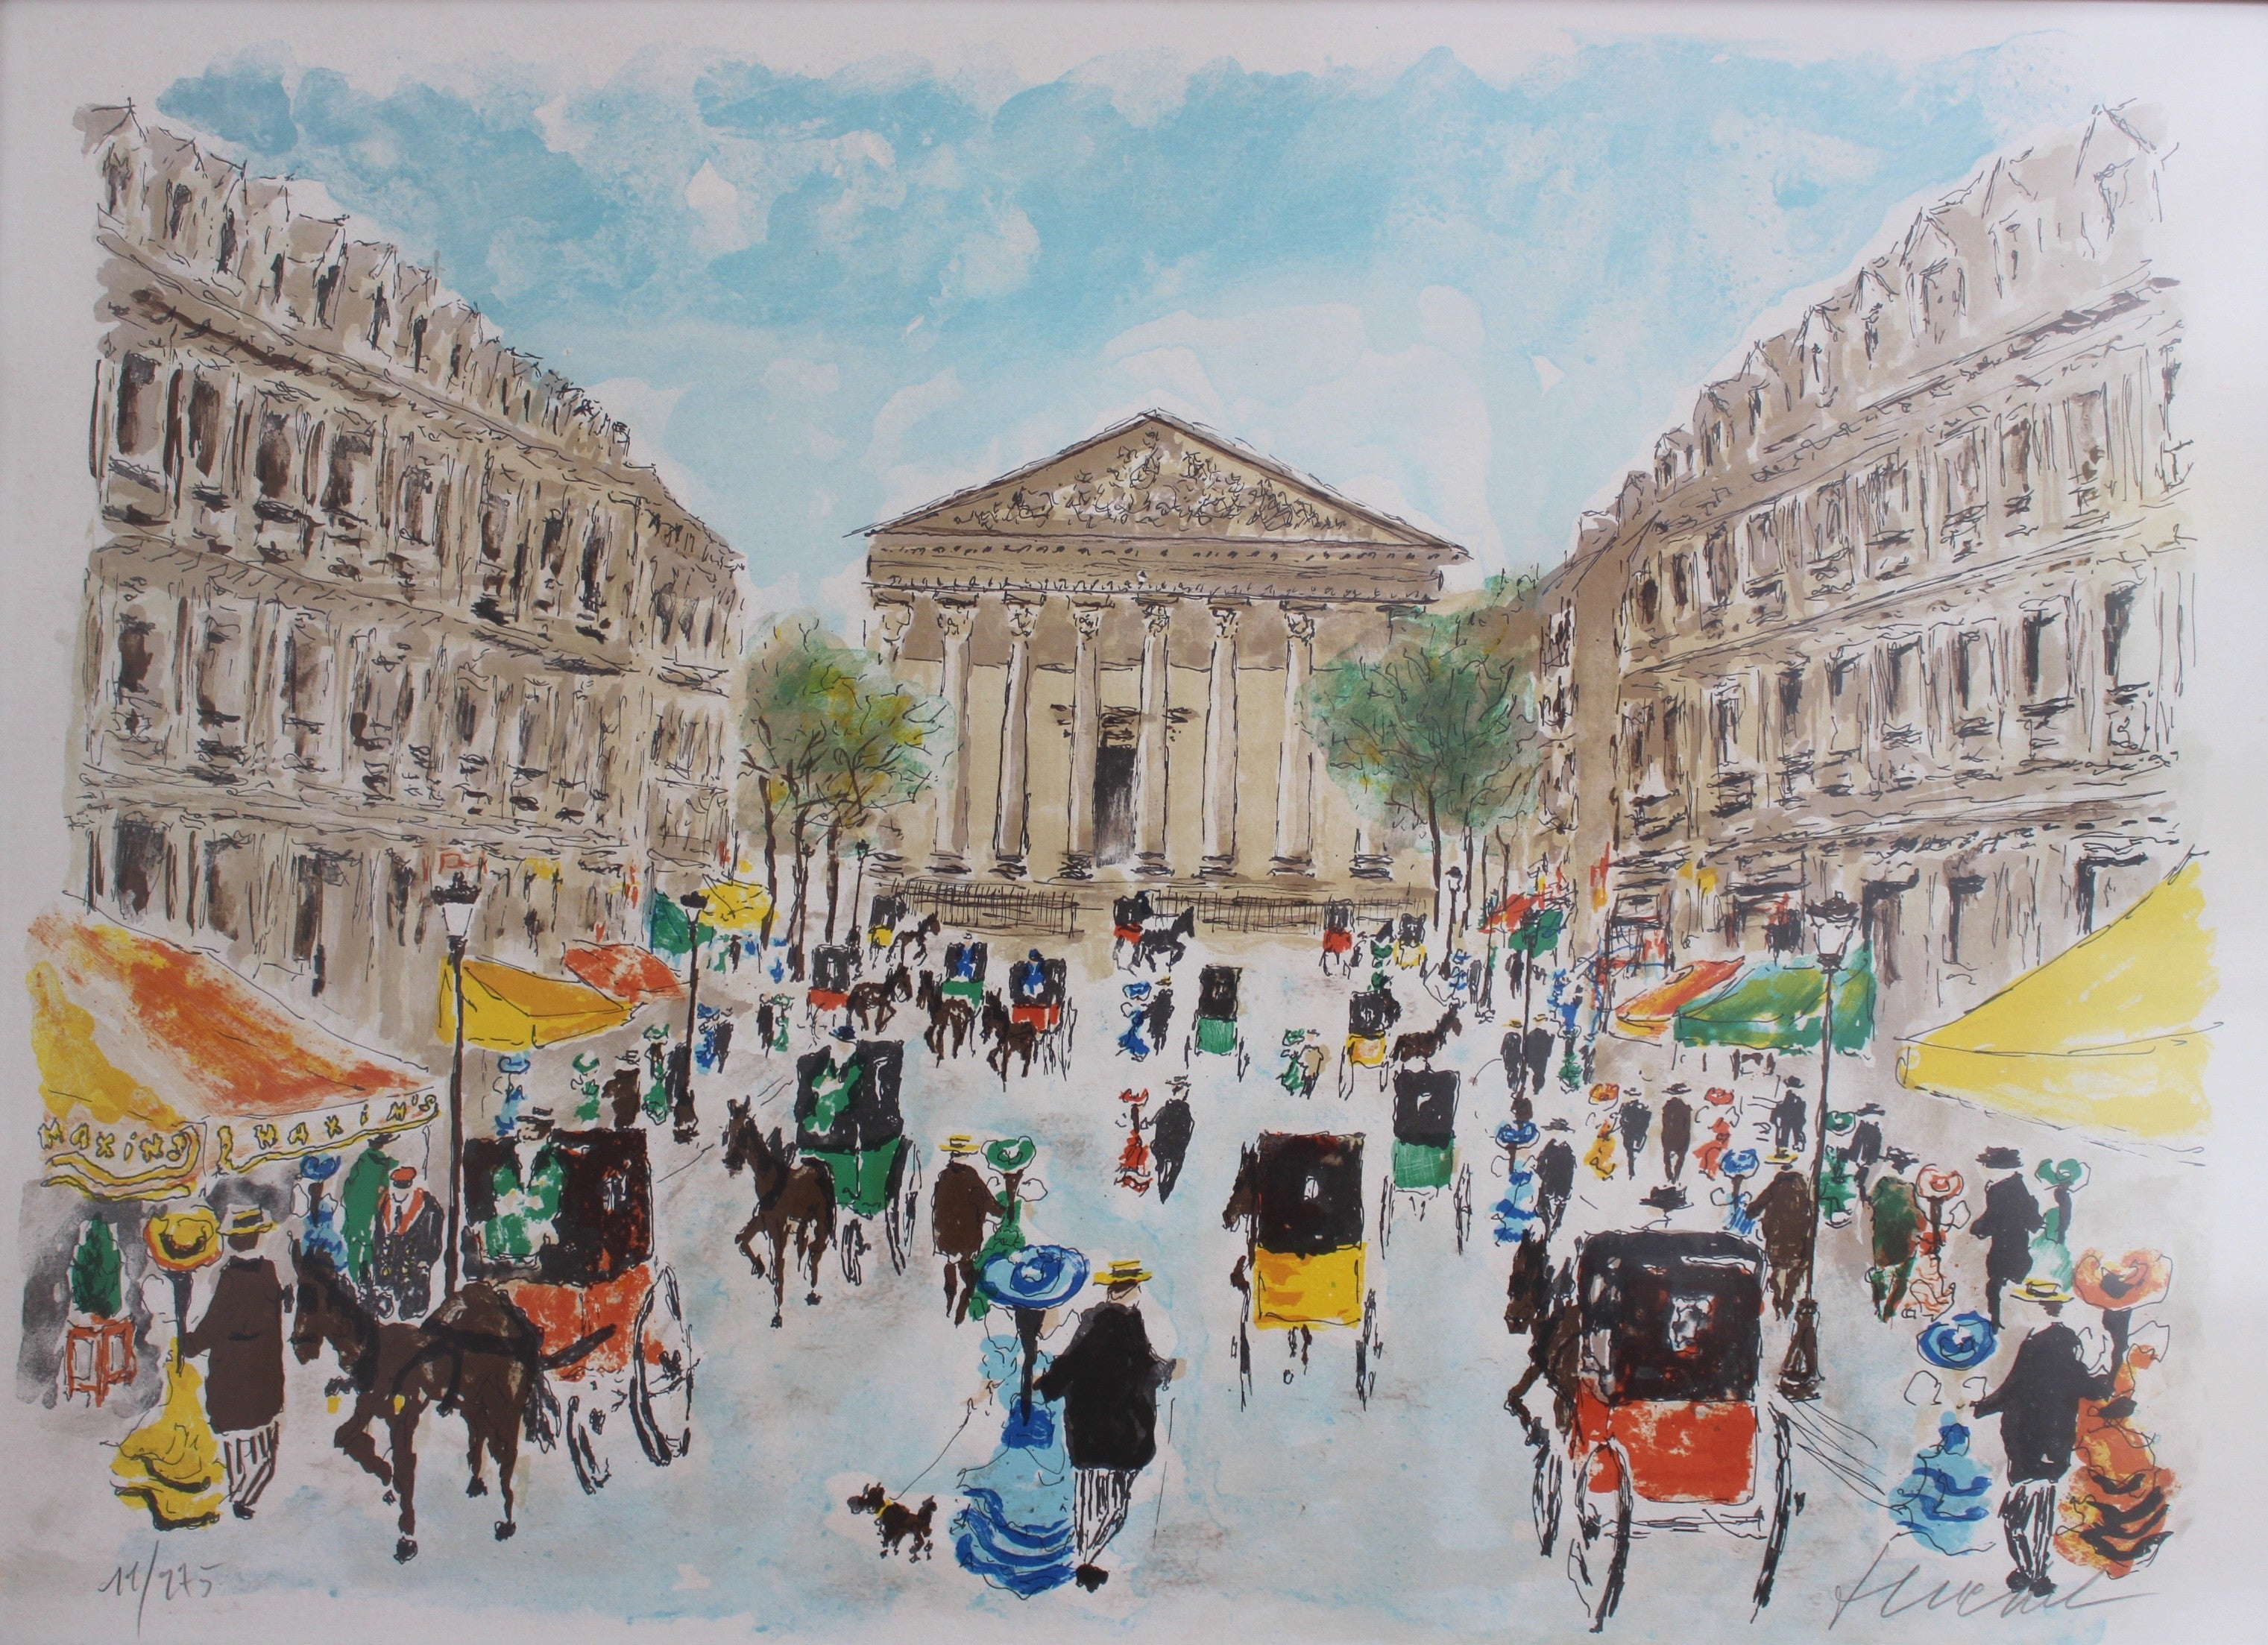 'Place de la Madeleine' Limited Edition Lithograph by Urbain Huchet (1983)